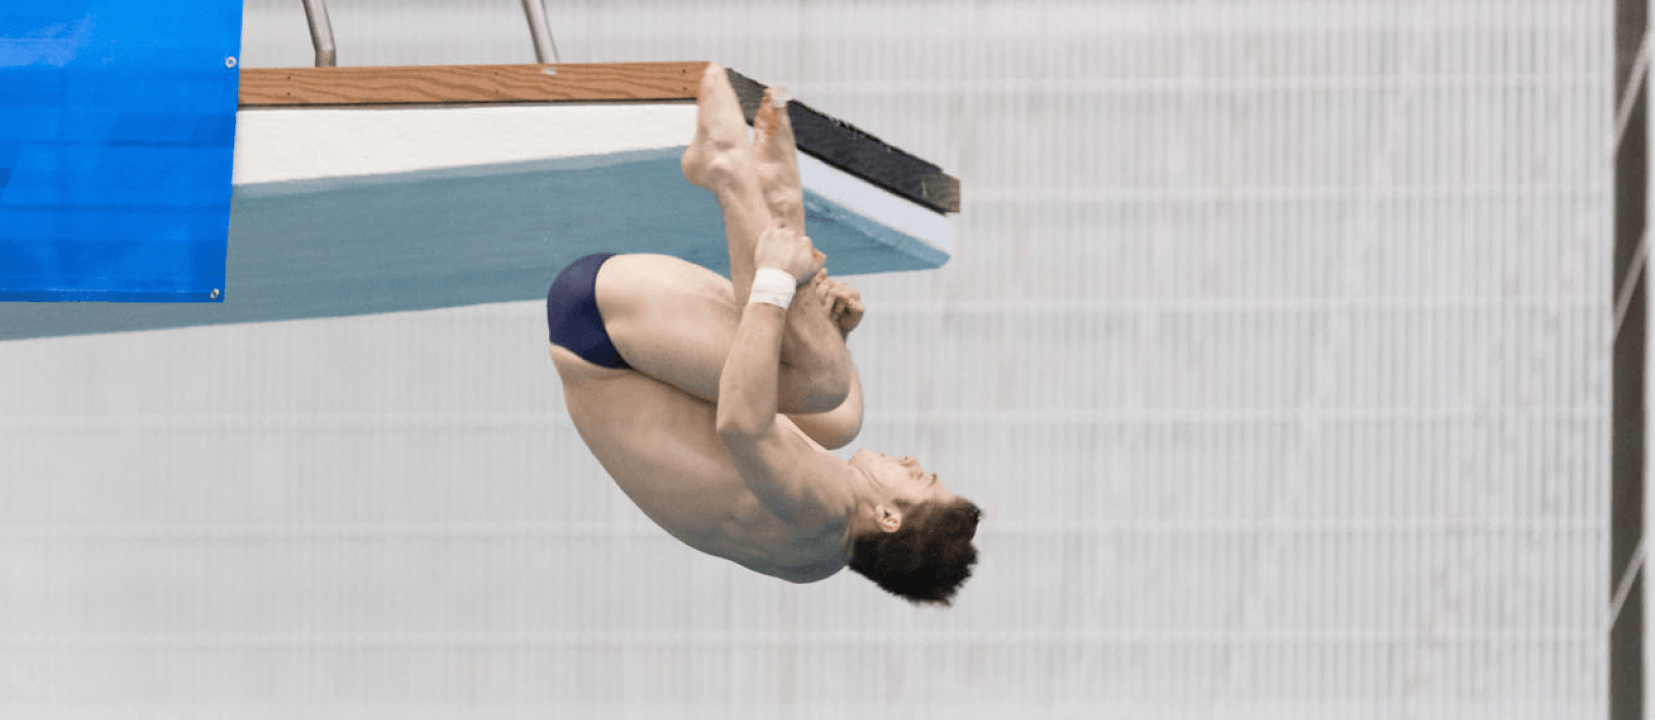 Indiana's Michael Hixon takes 1-meter bronze at FINA World Championships